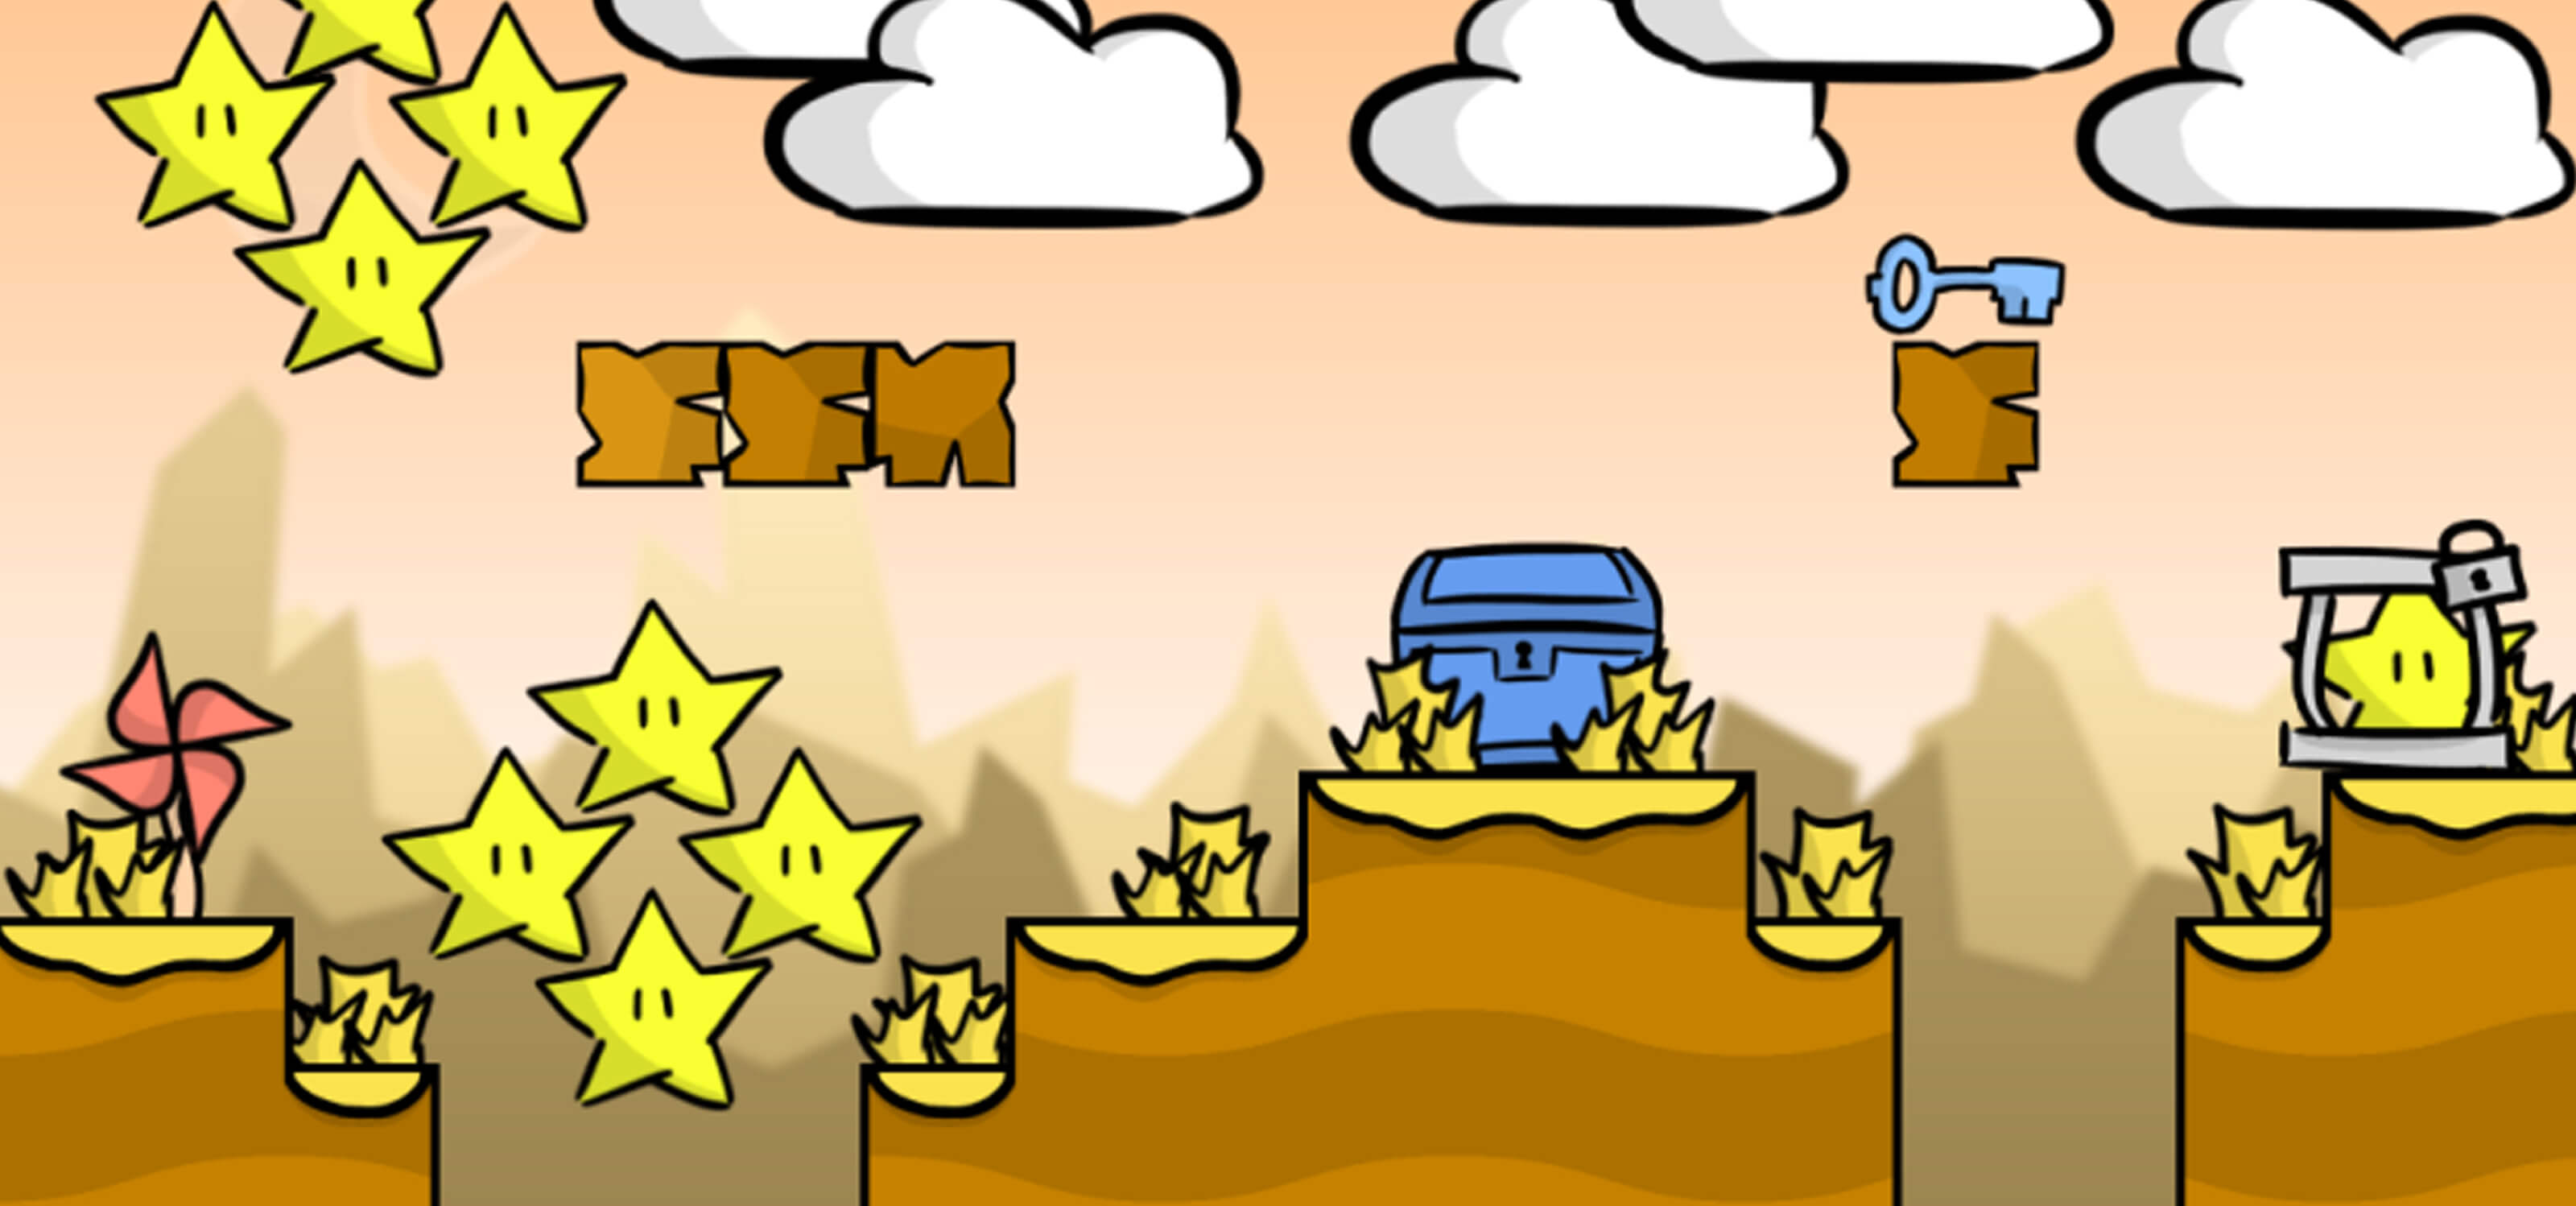 Screenshot from Star Thief featuring a treasure chest, white puffy clouds and lots of yellow stars waiting to be stolen